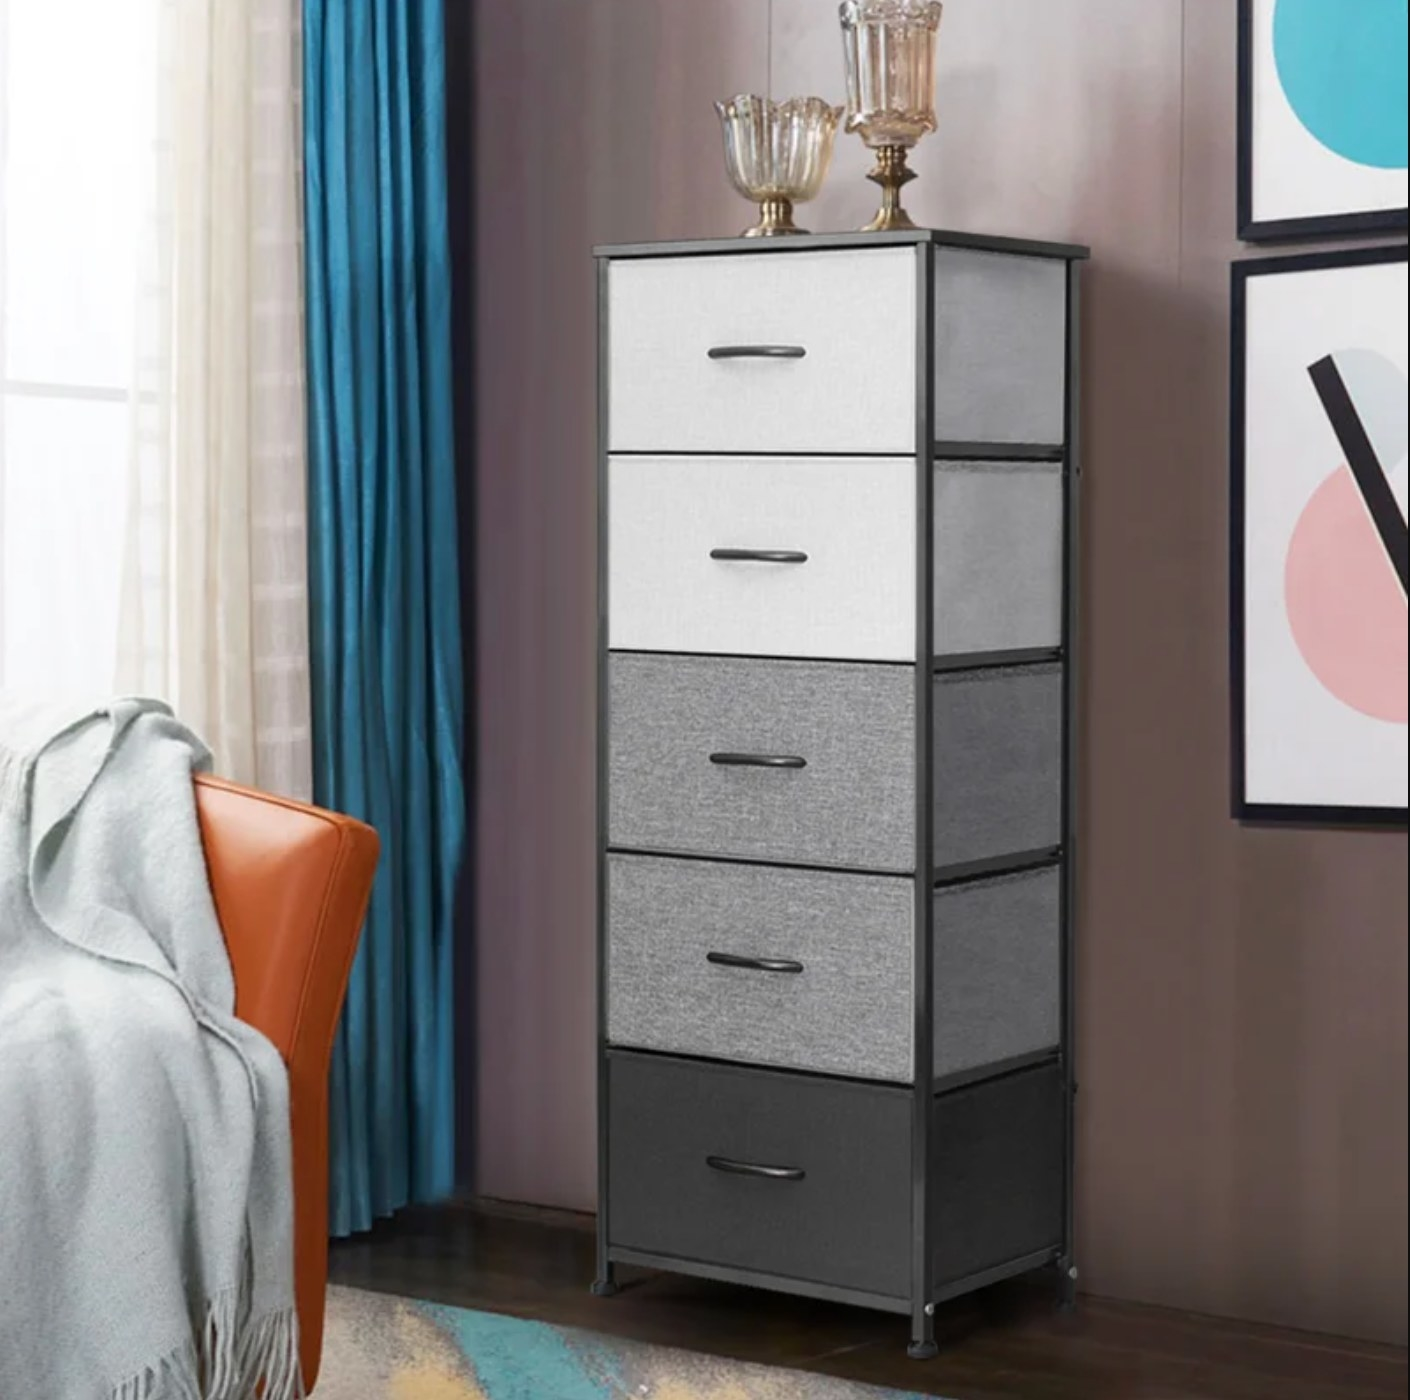 The five drawer lingerie chest in gray/black